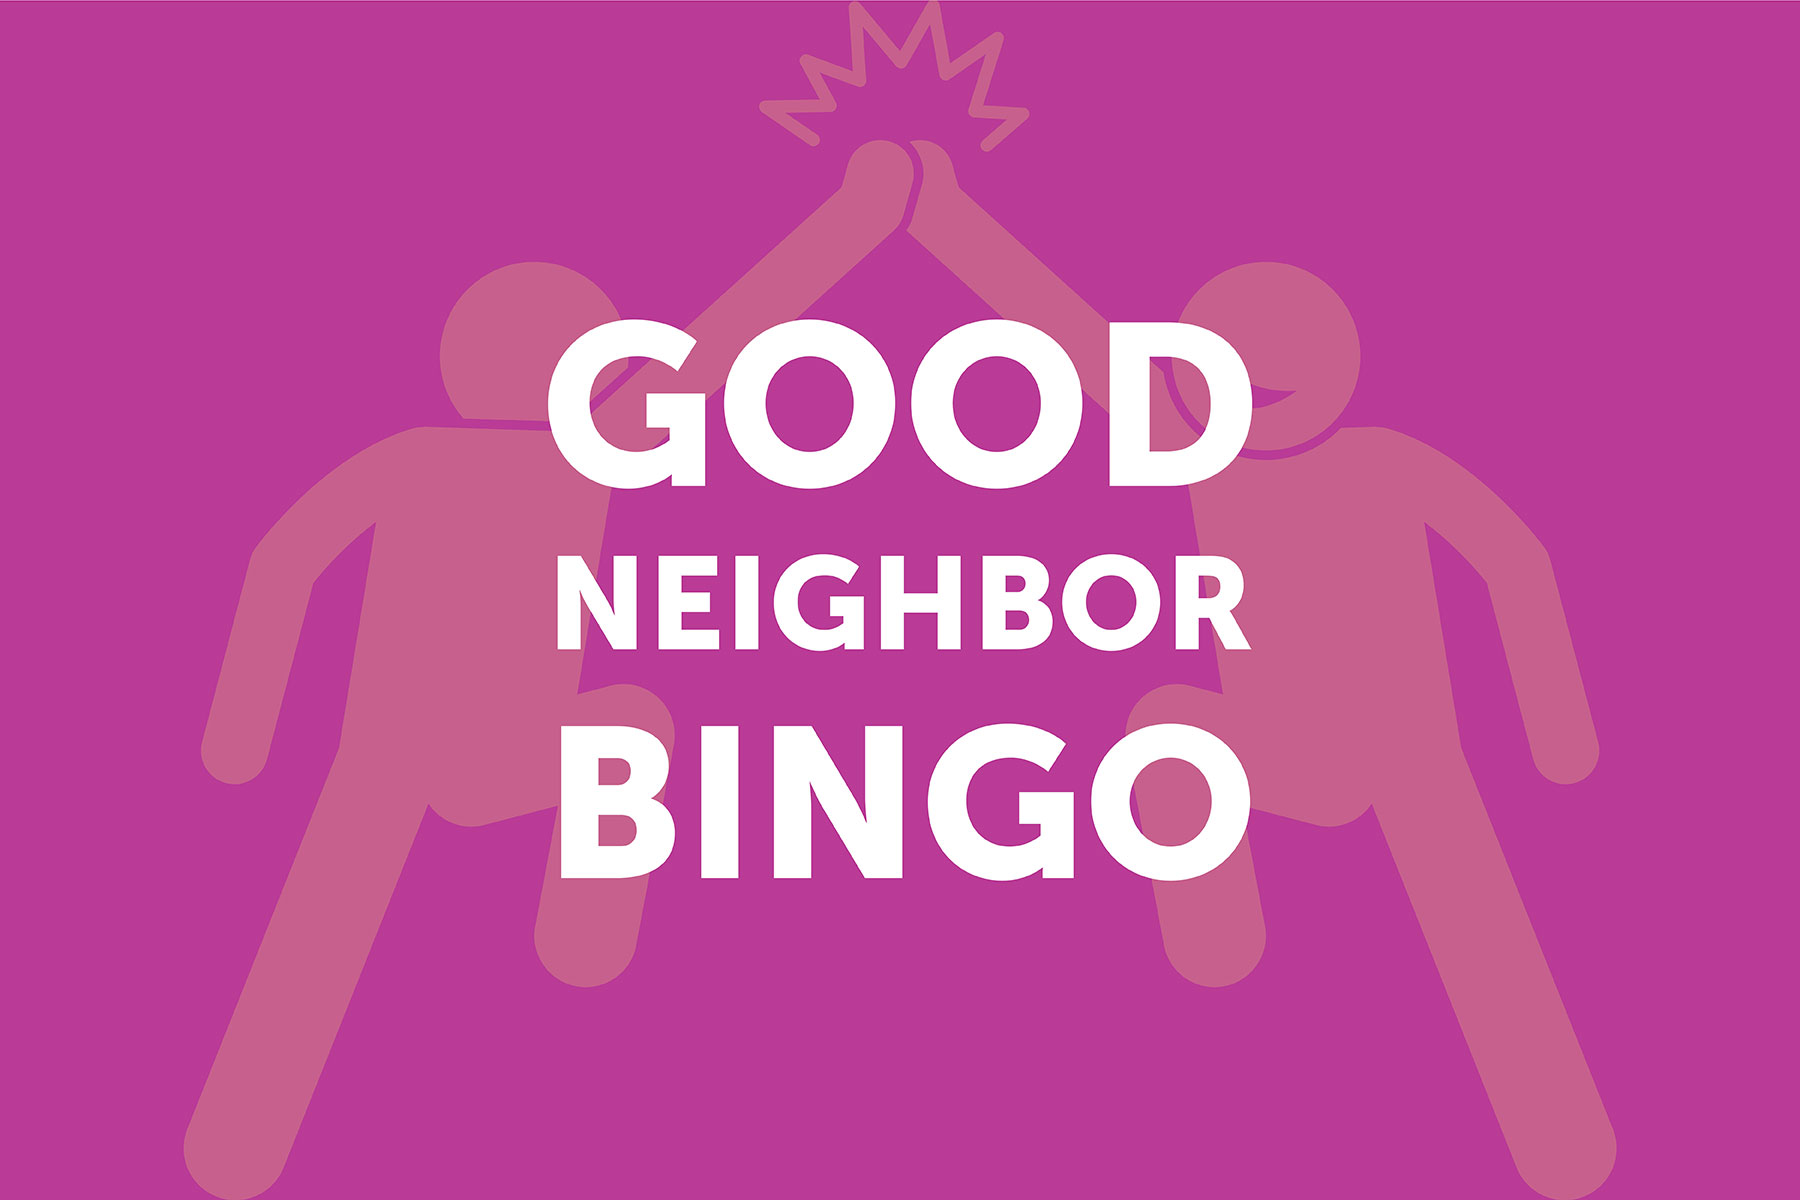 Good Neighbor Bingo